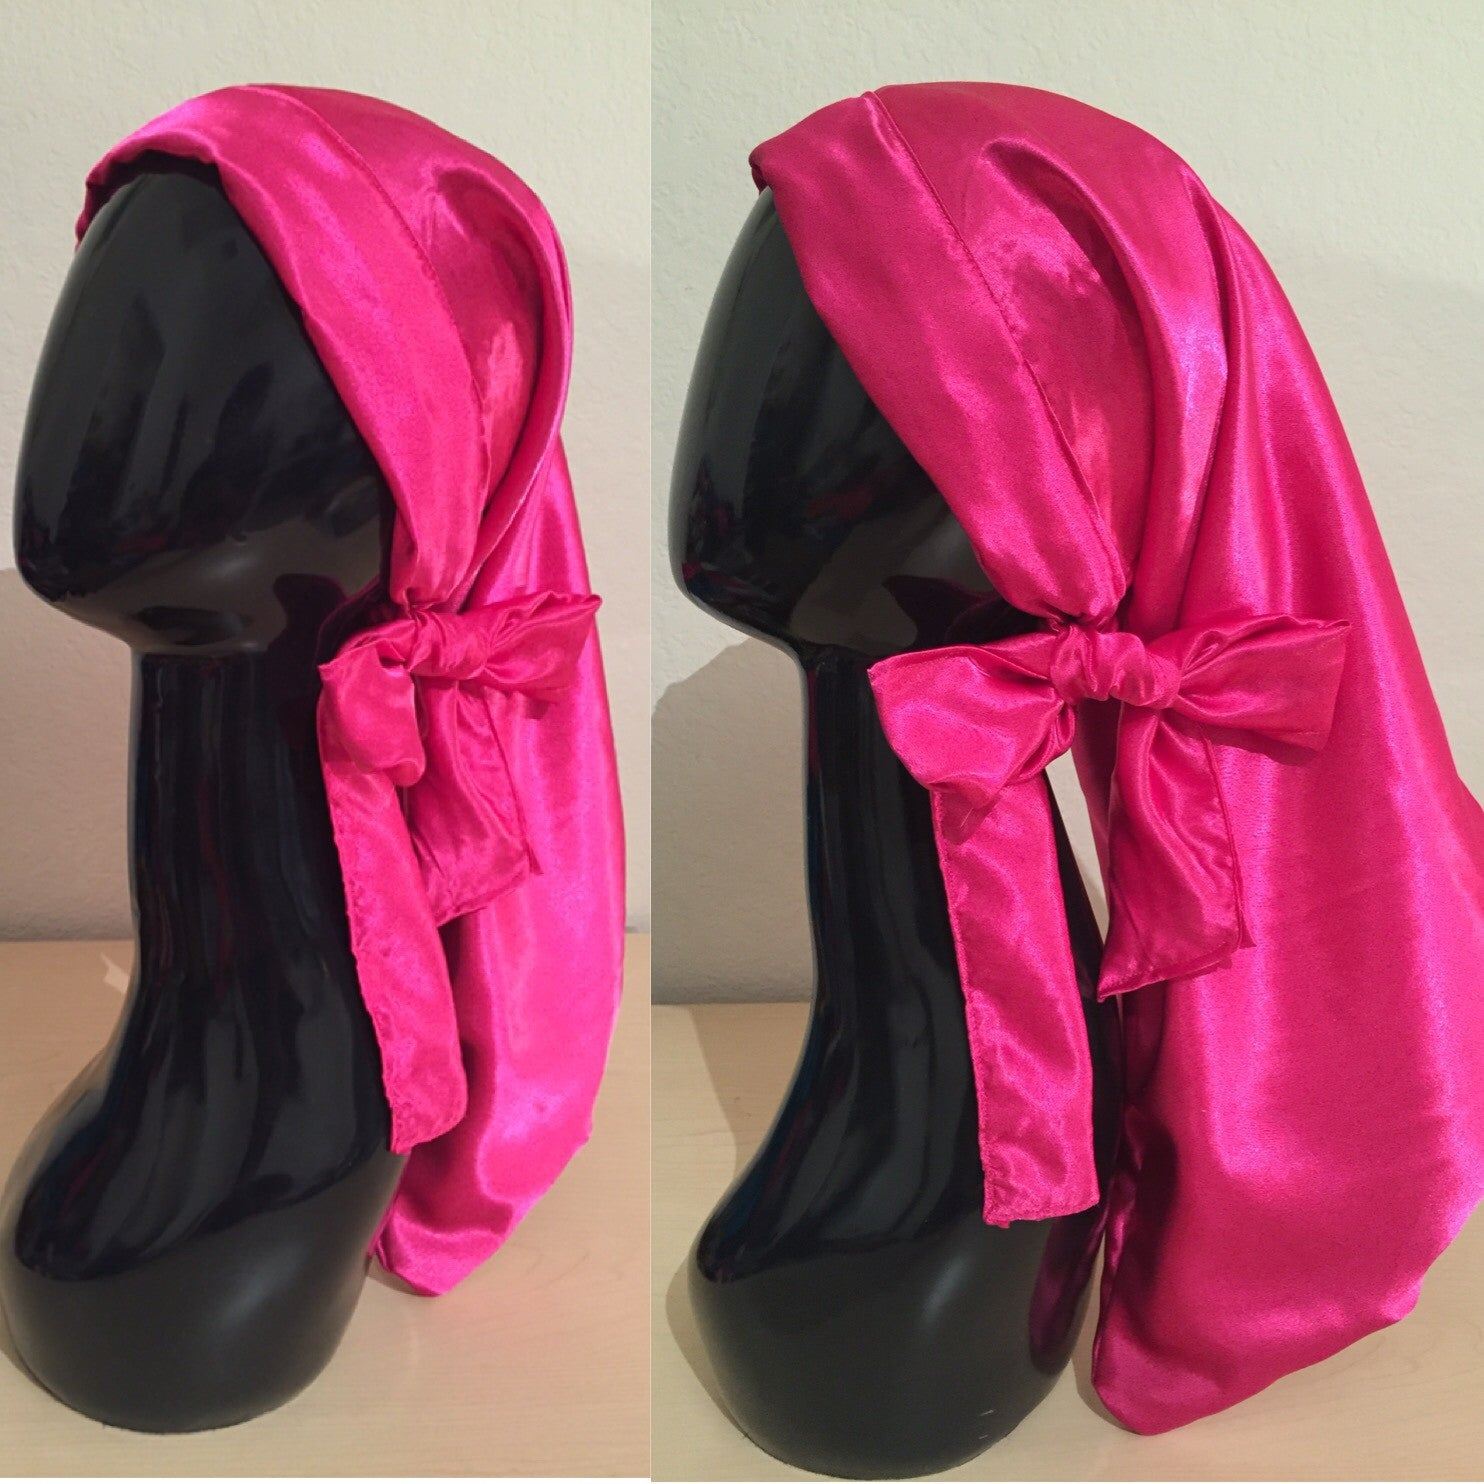 Hot pink Pocket bonnet